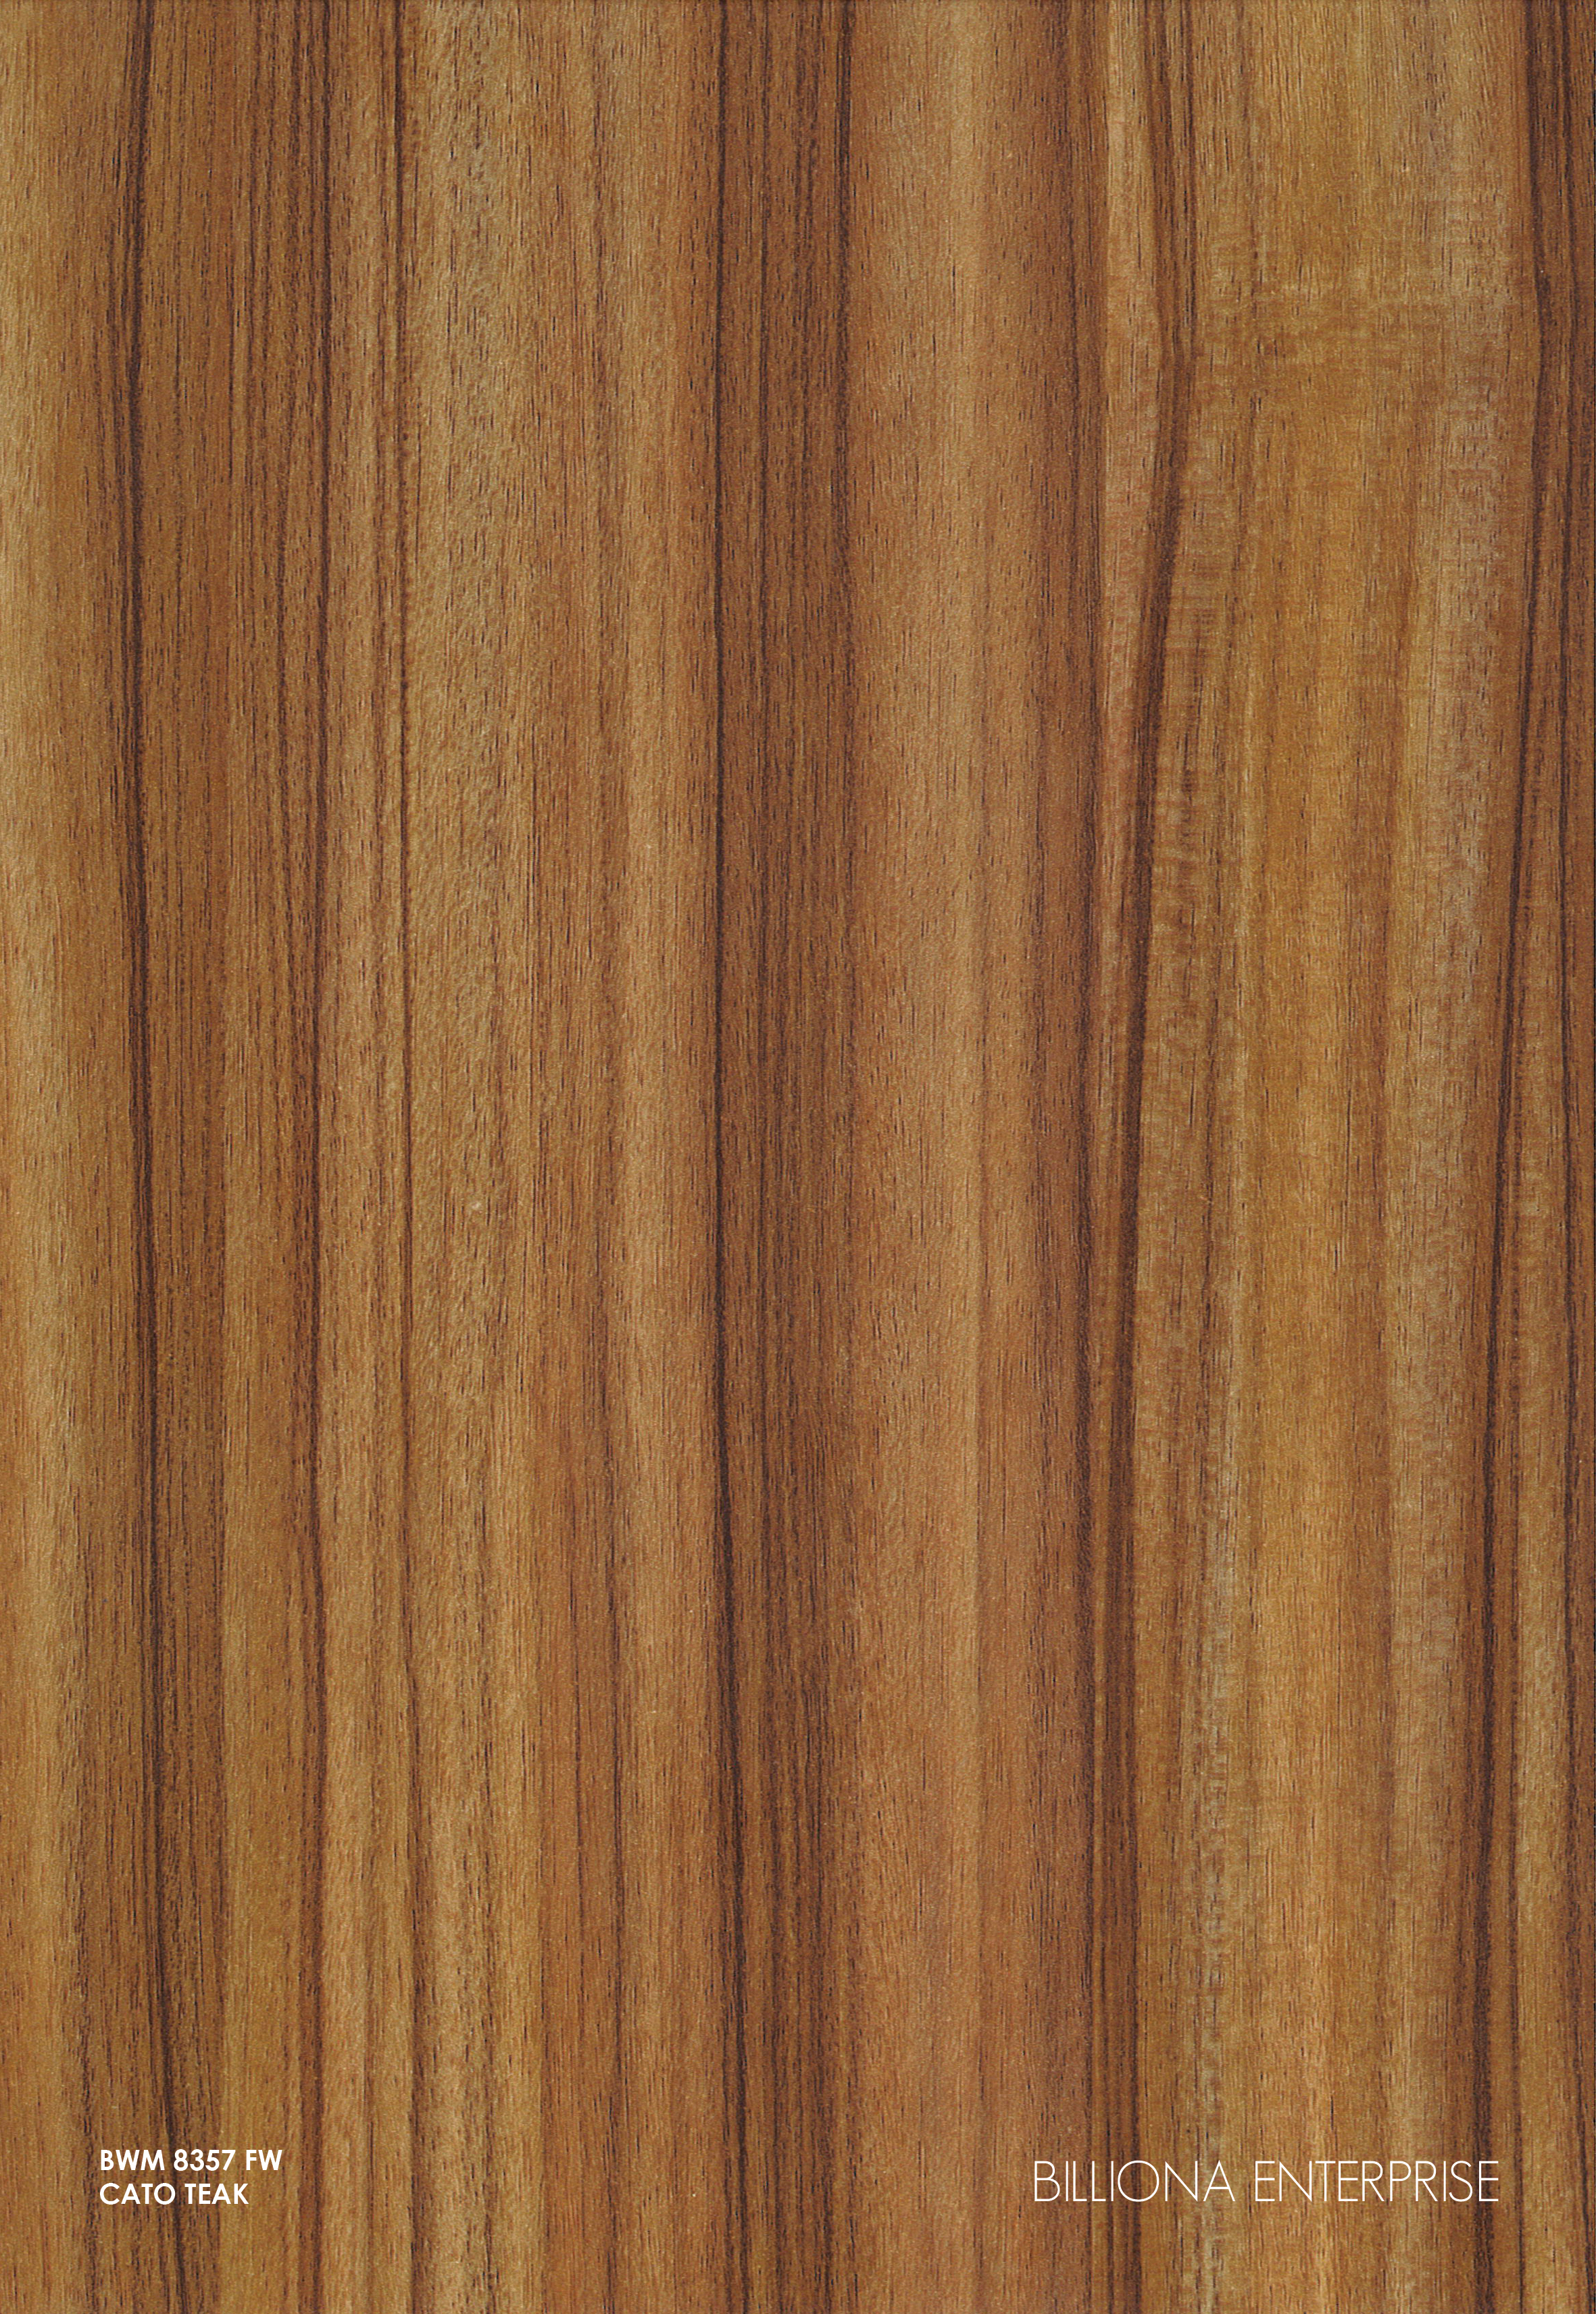 BWM 8357 FW - Cato Teak High Pressure Laminate (HPL), Billiona Enterprise Singapore